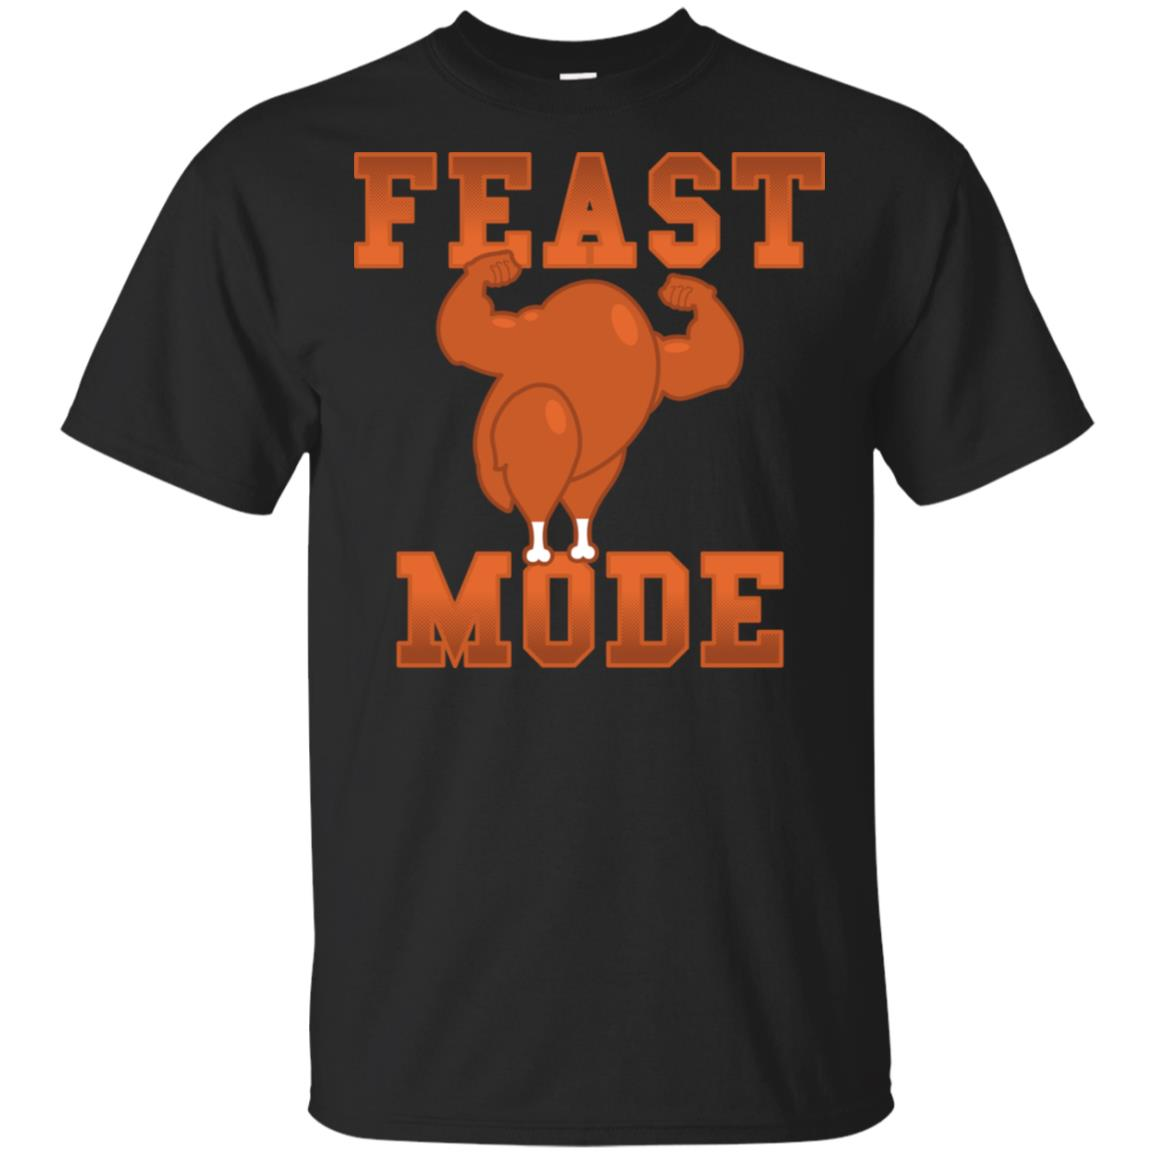 Feast Mode - Funny Thanksgiving Day Graphic Design Unisex Short Sleeve